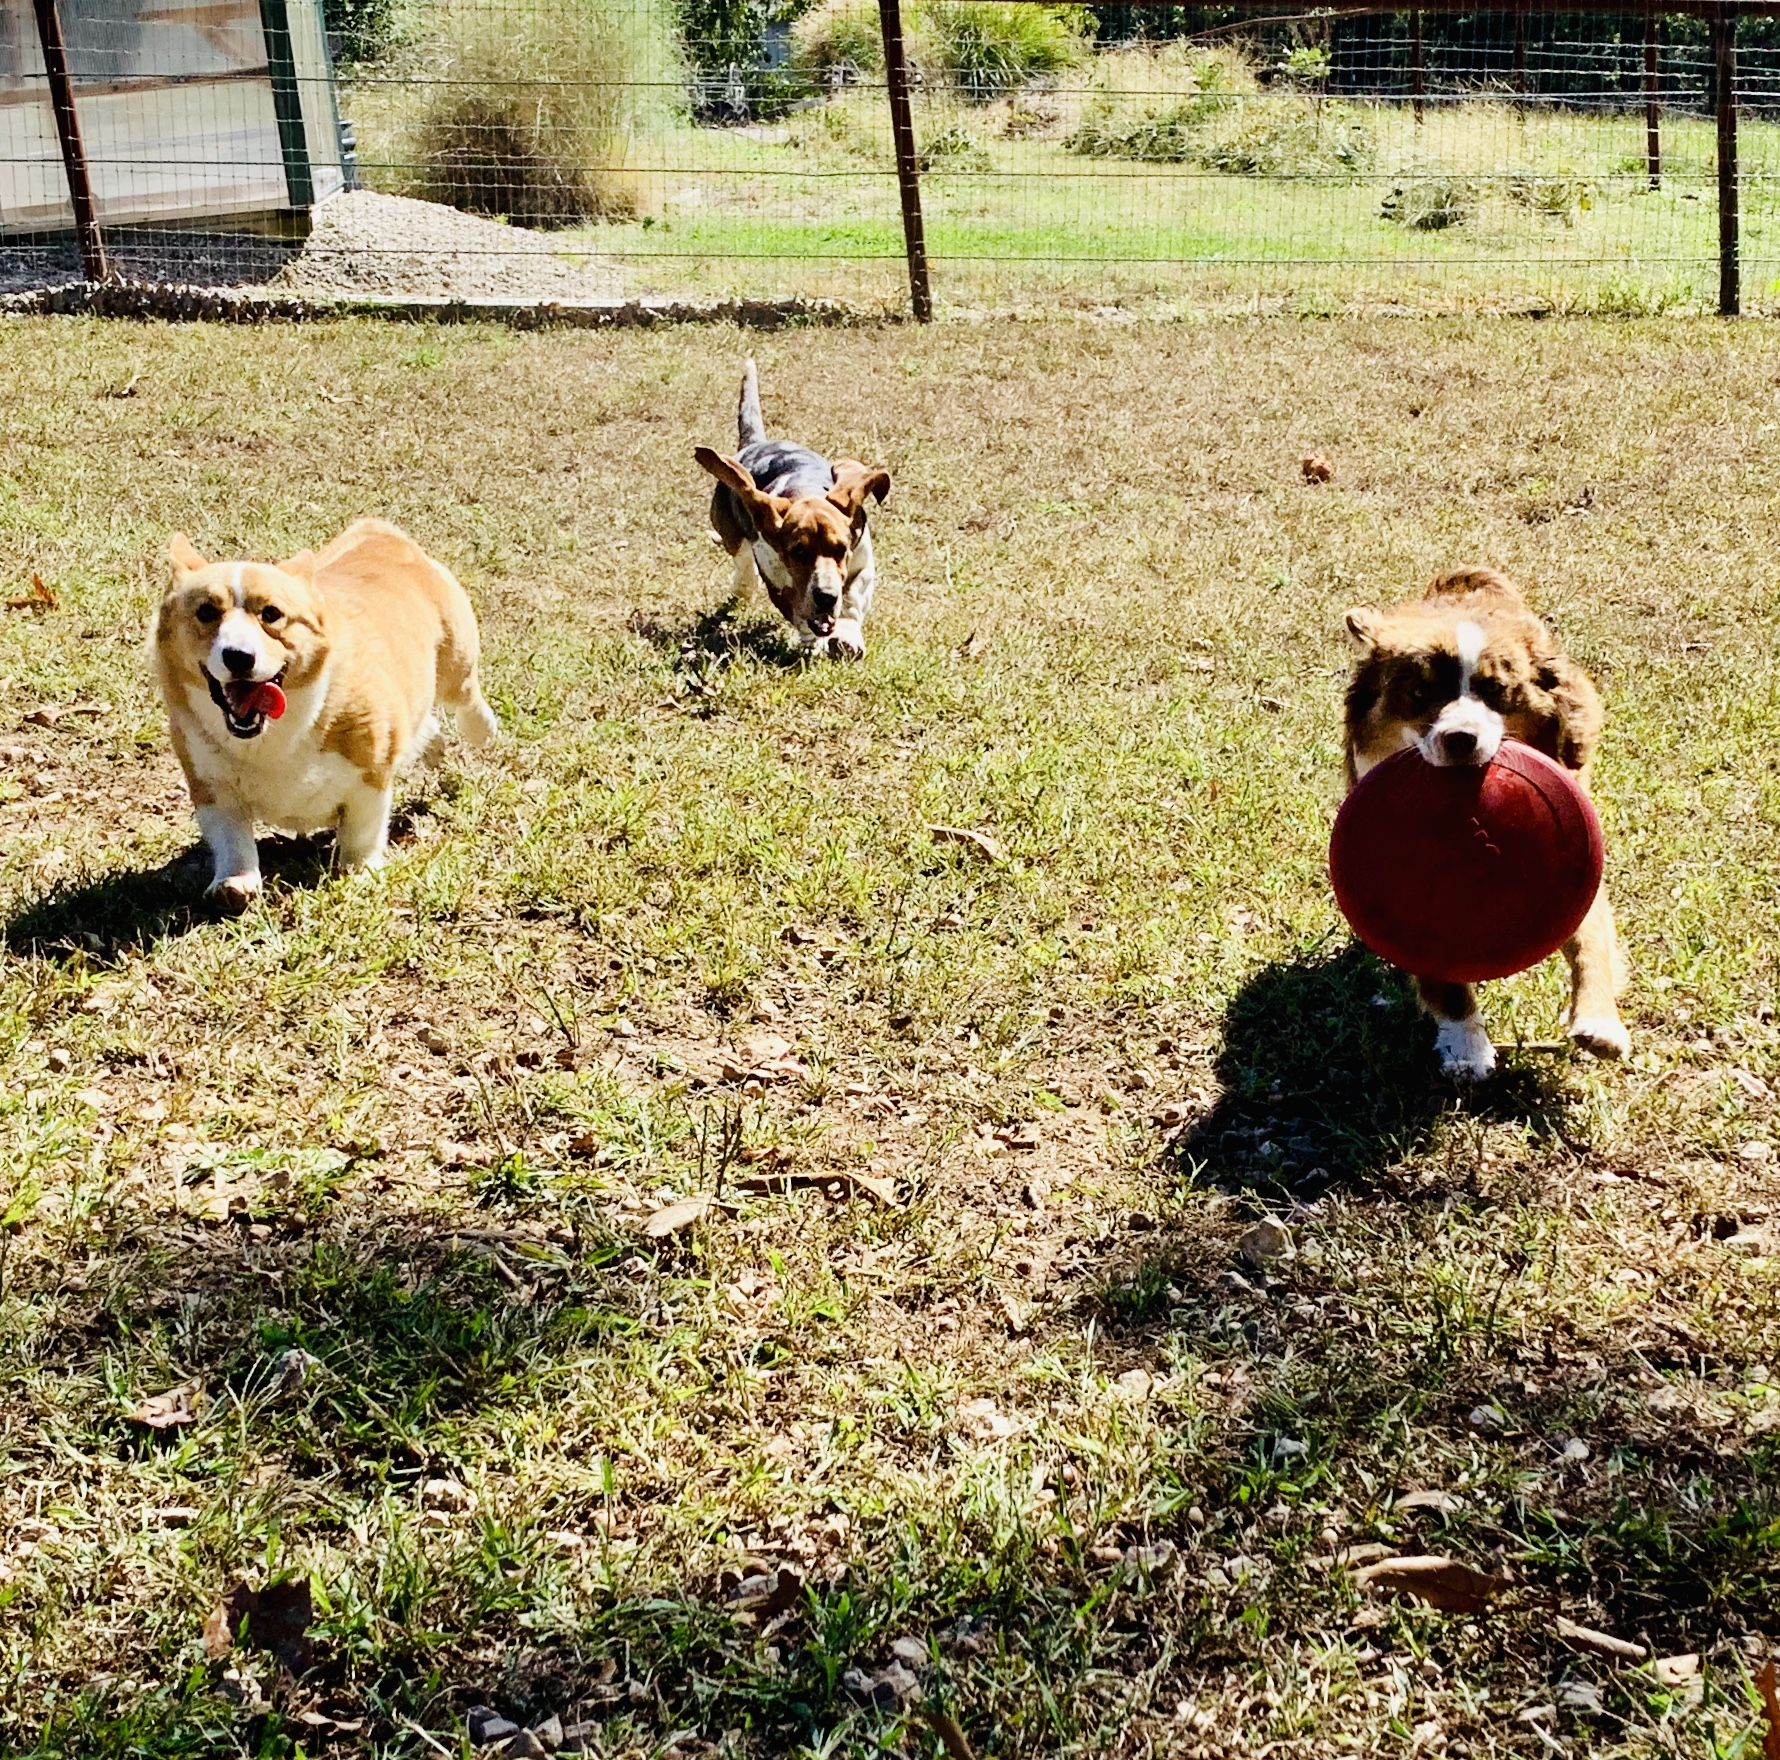 Dogs playing in the yard